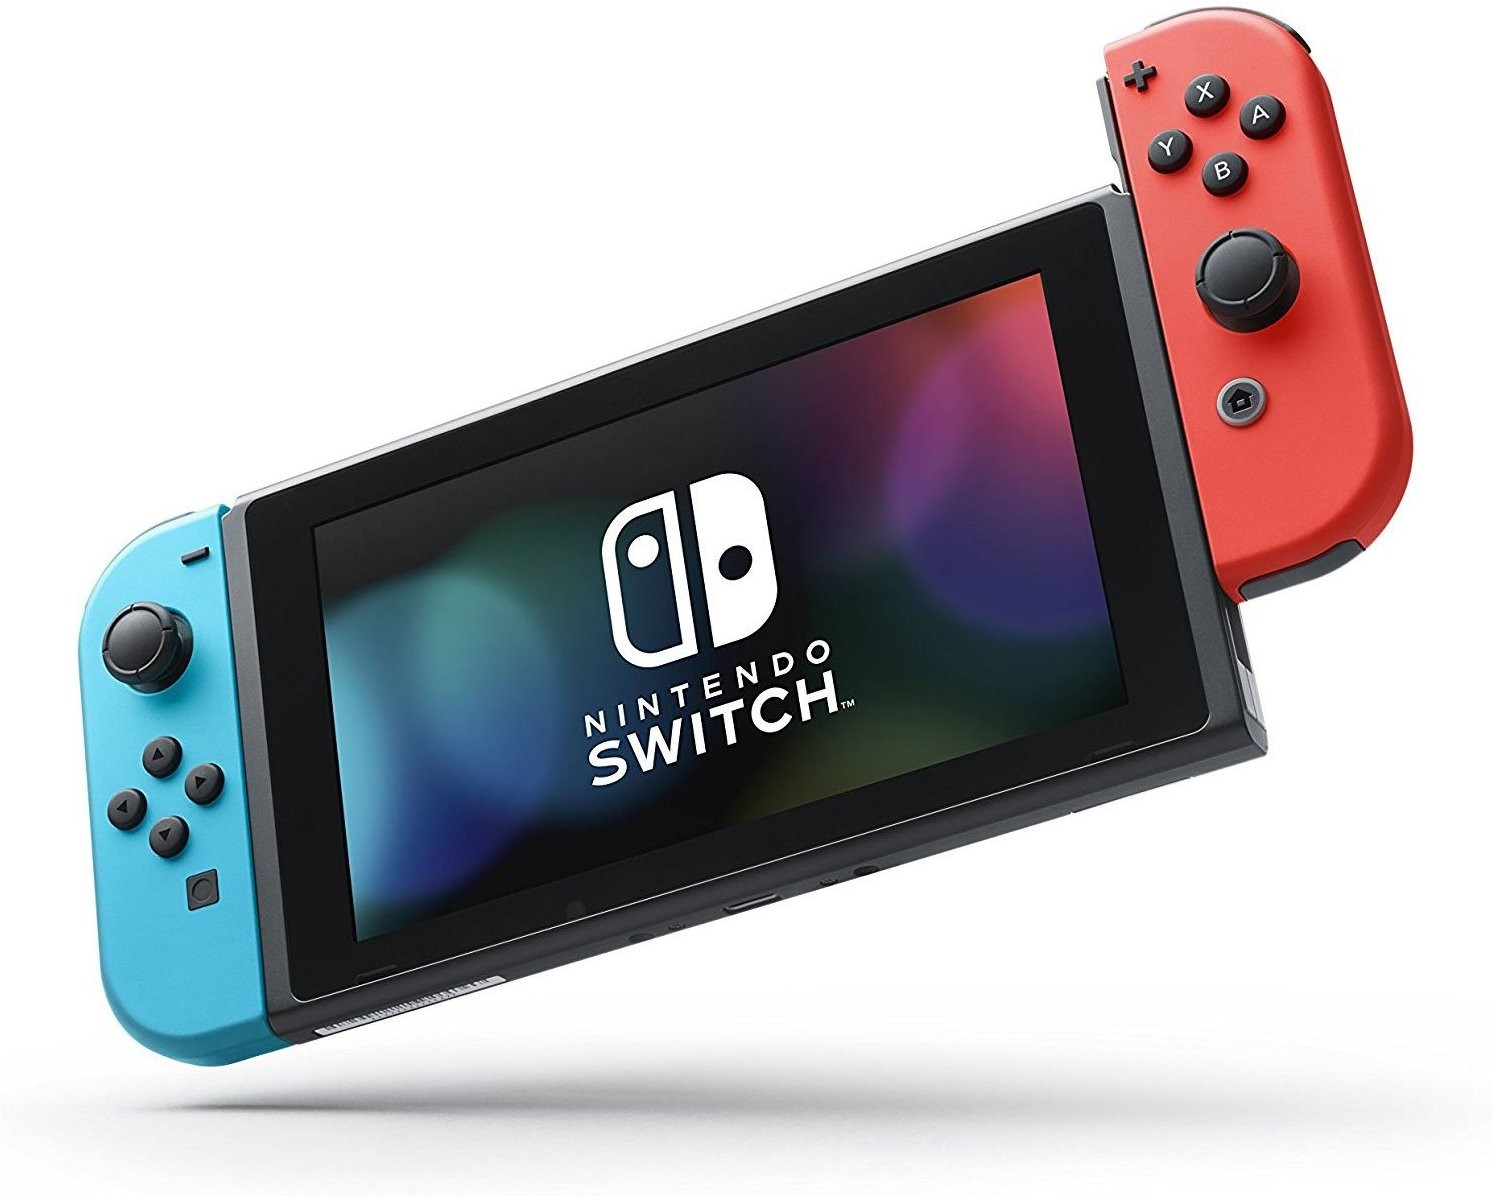 USITC Is Investigating Nintendo For Switch Patent Infringement